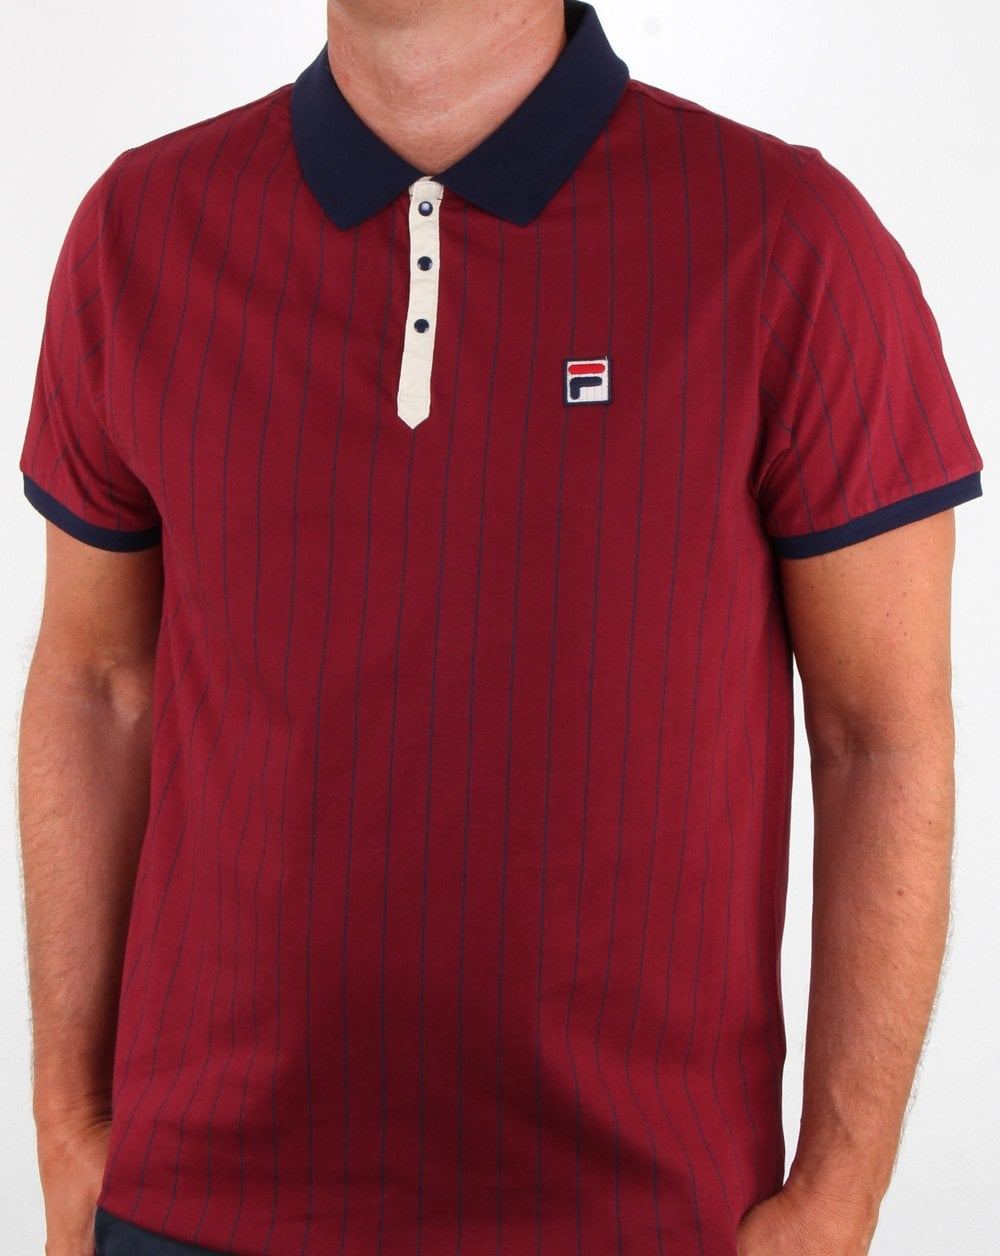 Fila Vintage Bb1 Polo Shirt Tibetan Red/Navy